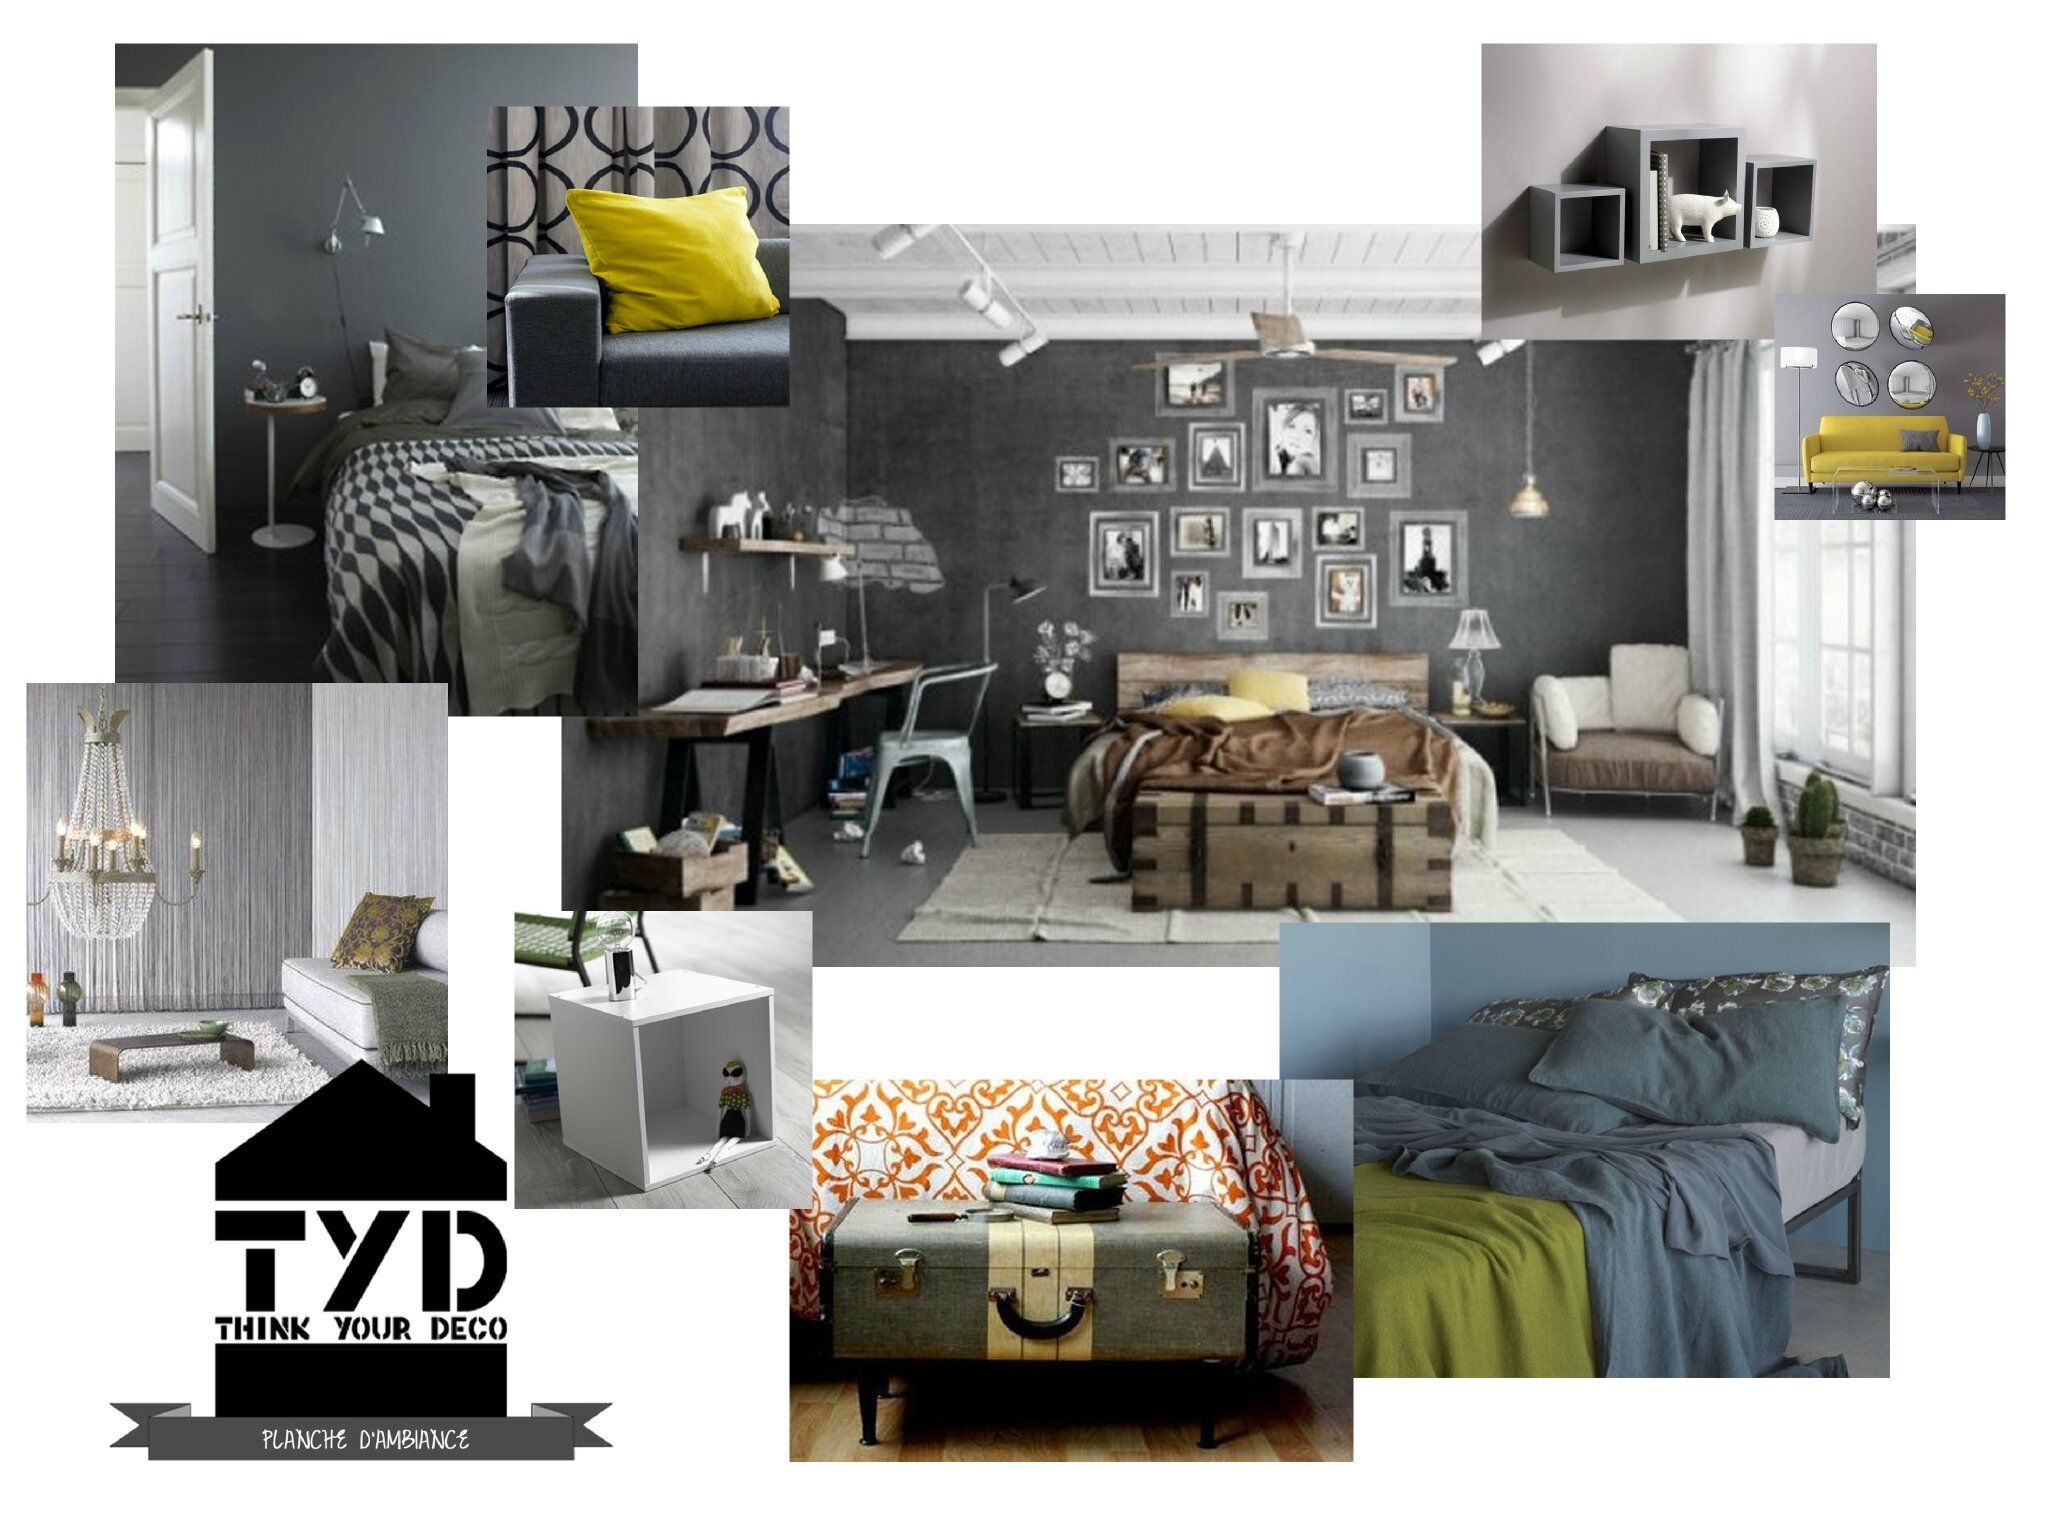 chambre d 39 amis i tyd think your deco coach d co nord lille p v le. Black Bedroom Furniture Sets. Home Design Ideas